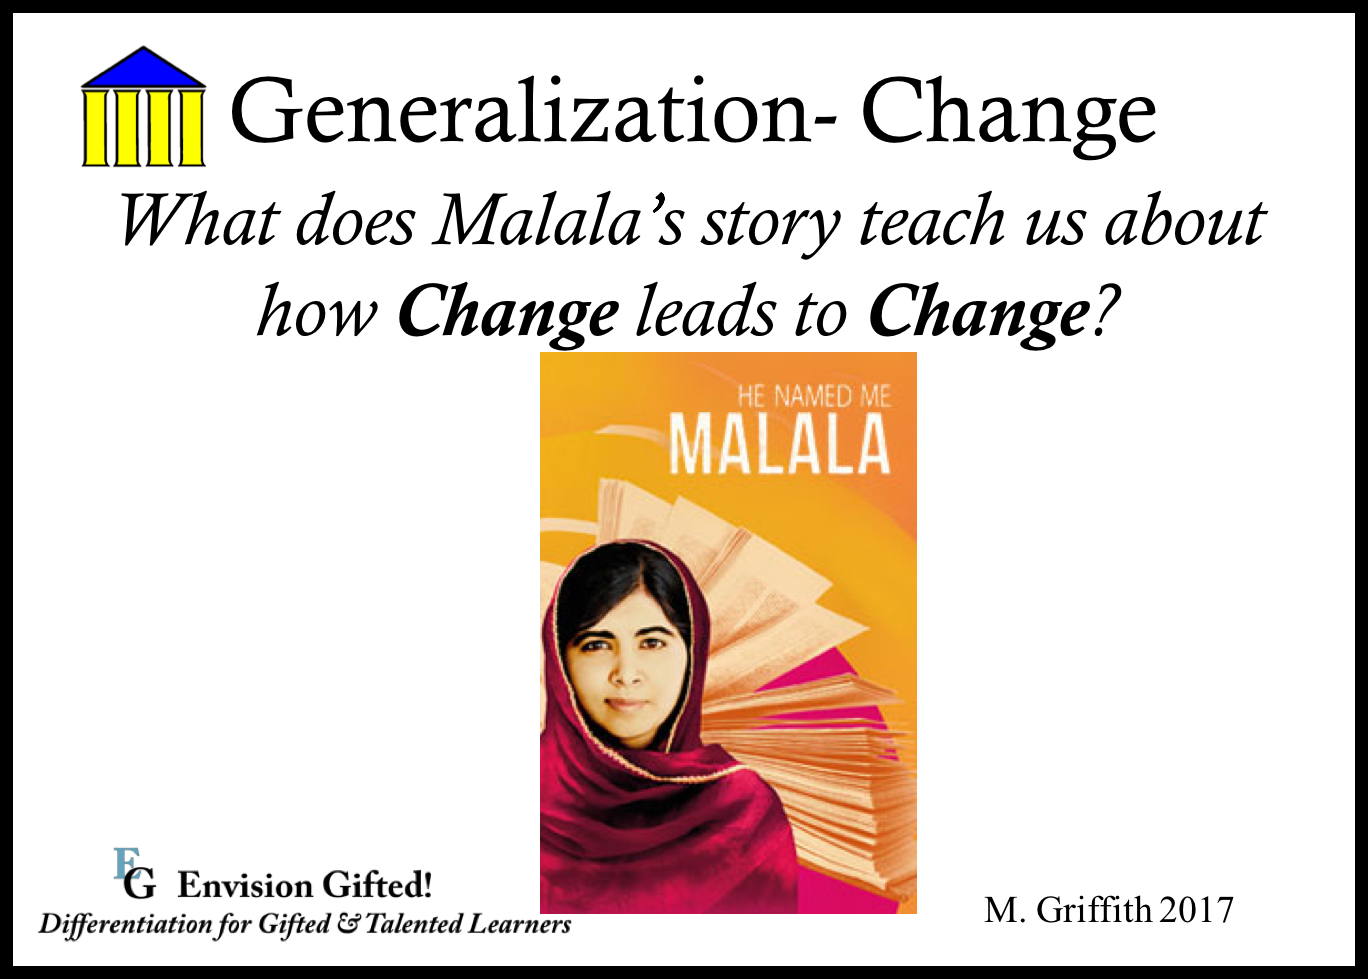 Envision Gifted. Universal Theme. Change Leads to Change